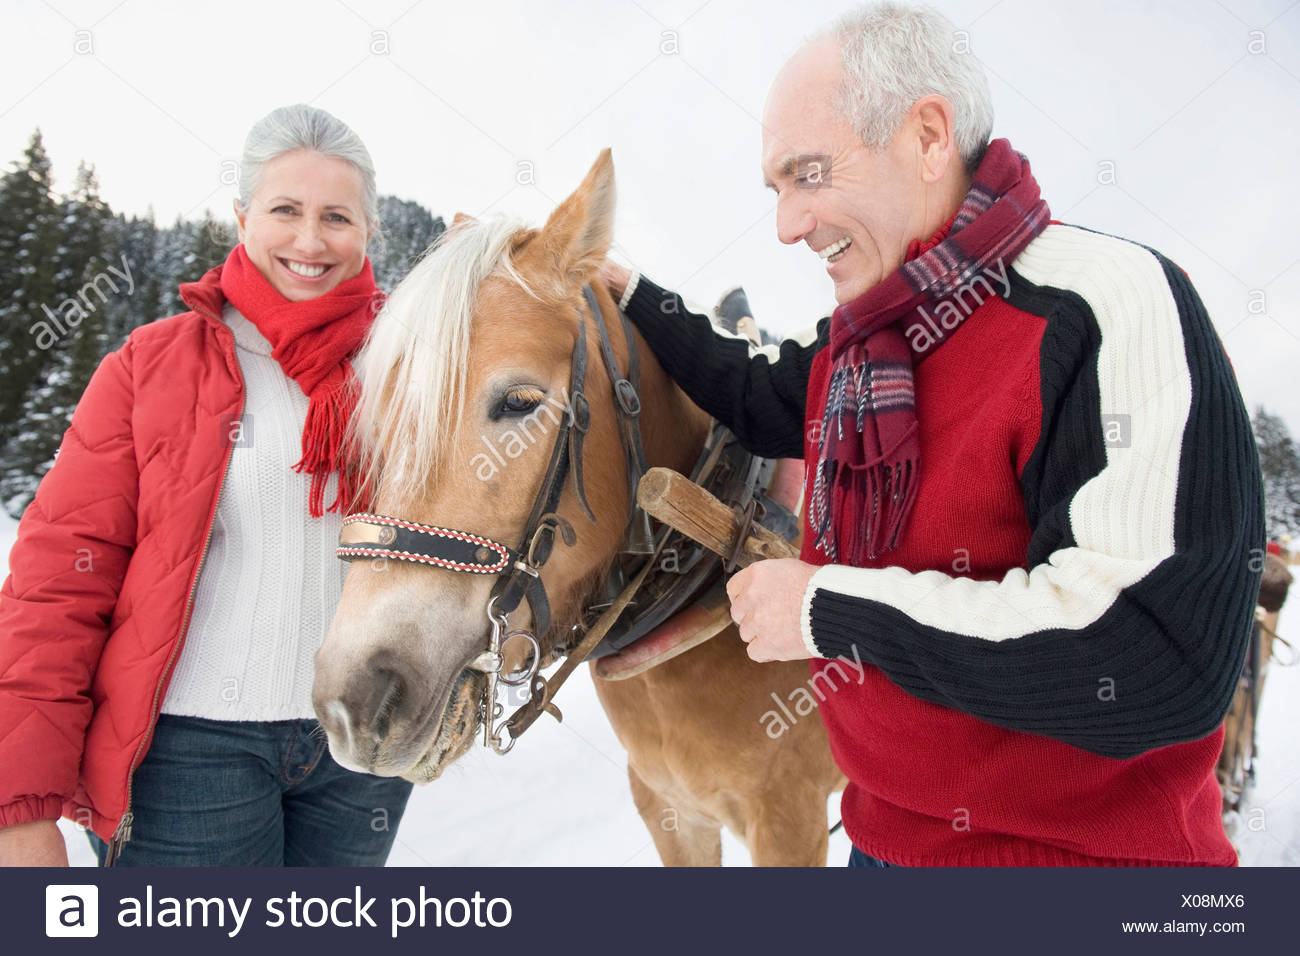 Italy, South Tyrol, Seiseralm, Senior couple standing by horse, smiling, portrait, close-up Stock Photo